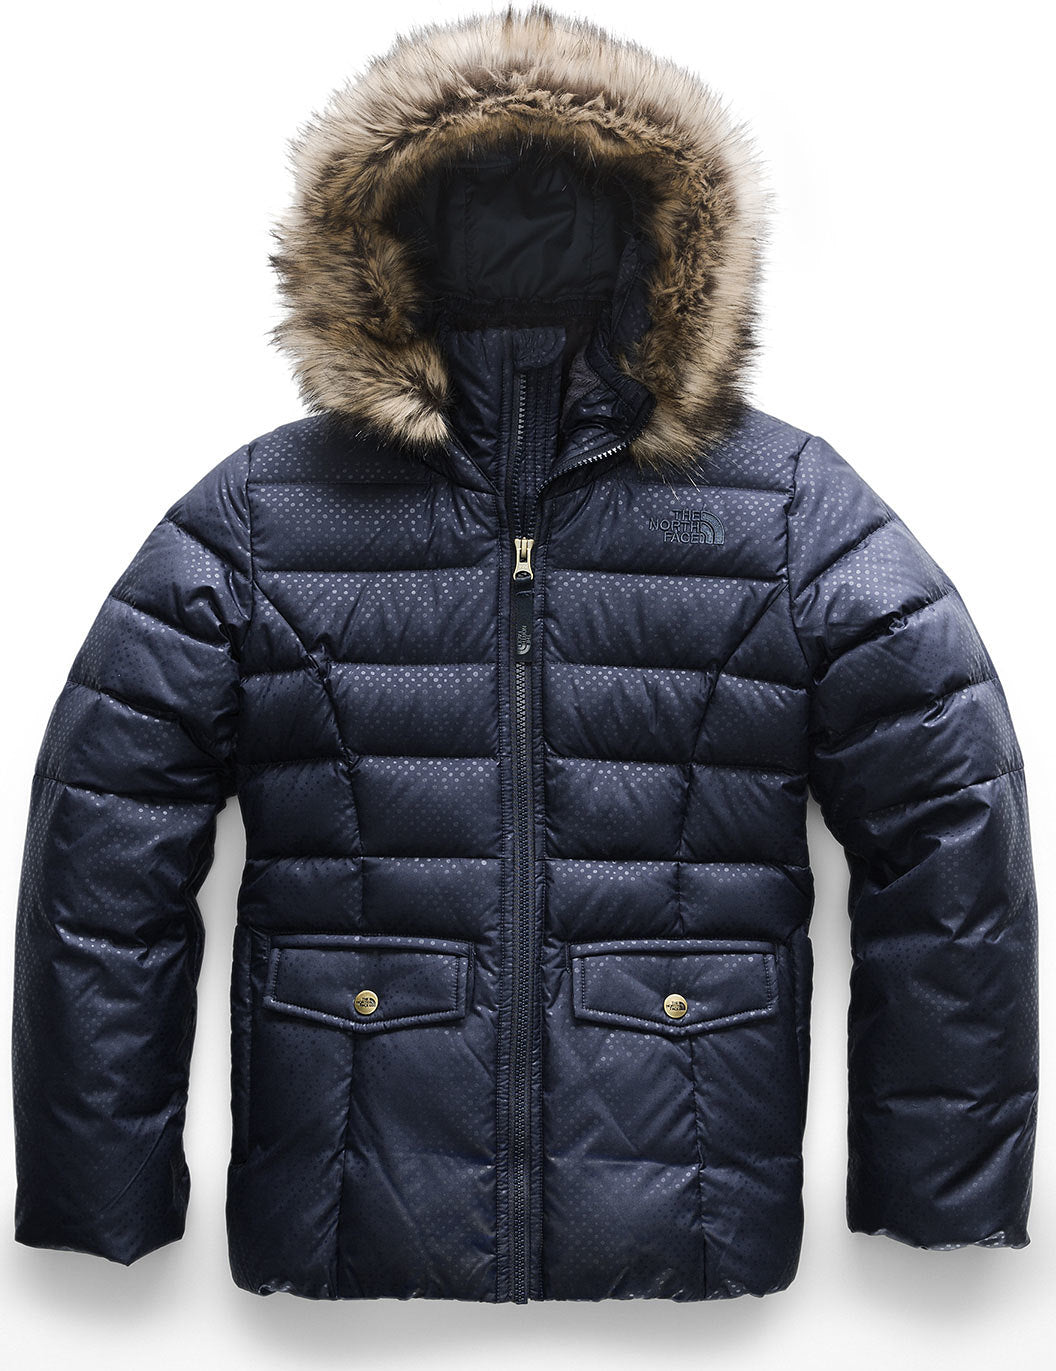 24364f543 The North Face Girl's Gotham 2.0 Down Jacket